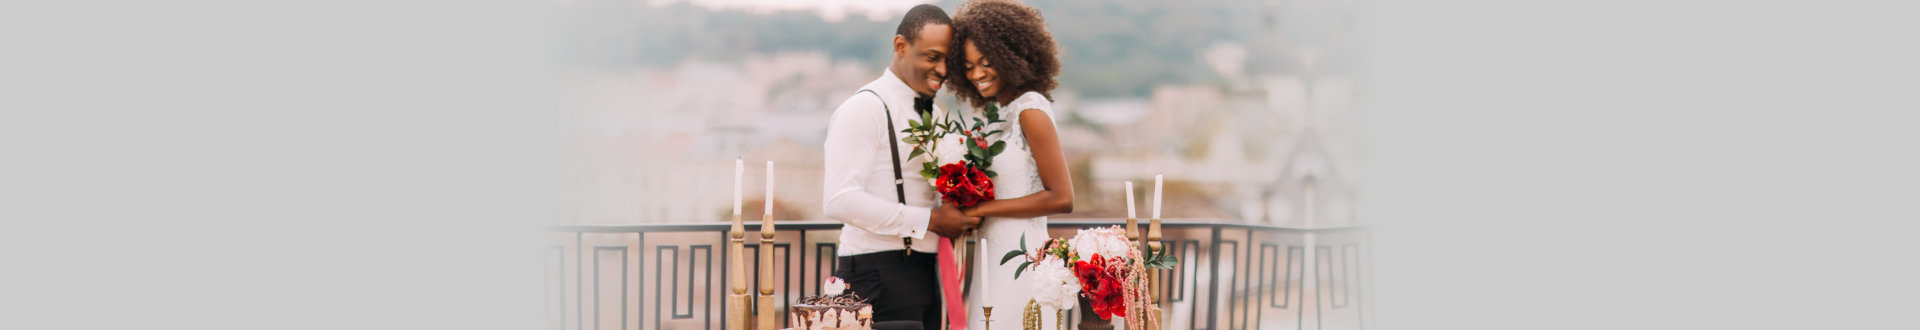 Charming black wedding couple holding handes on the terrace